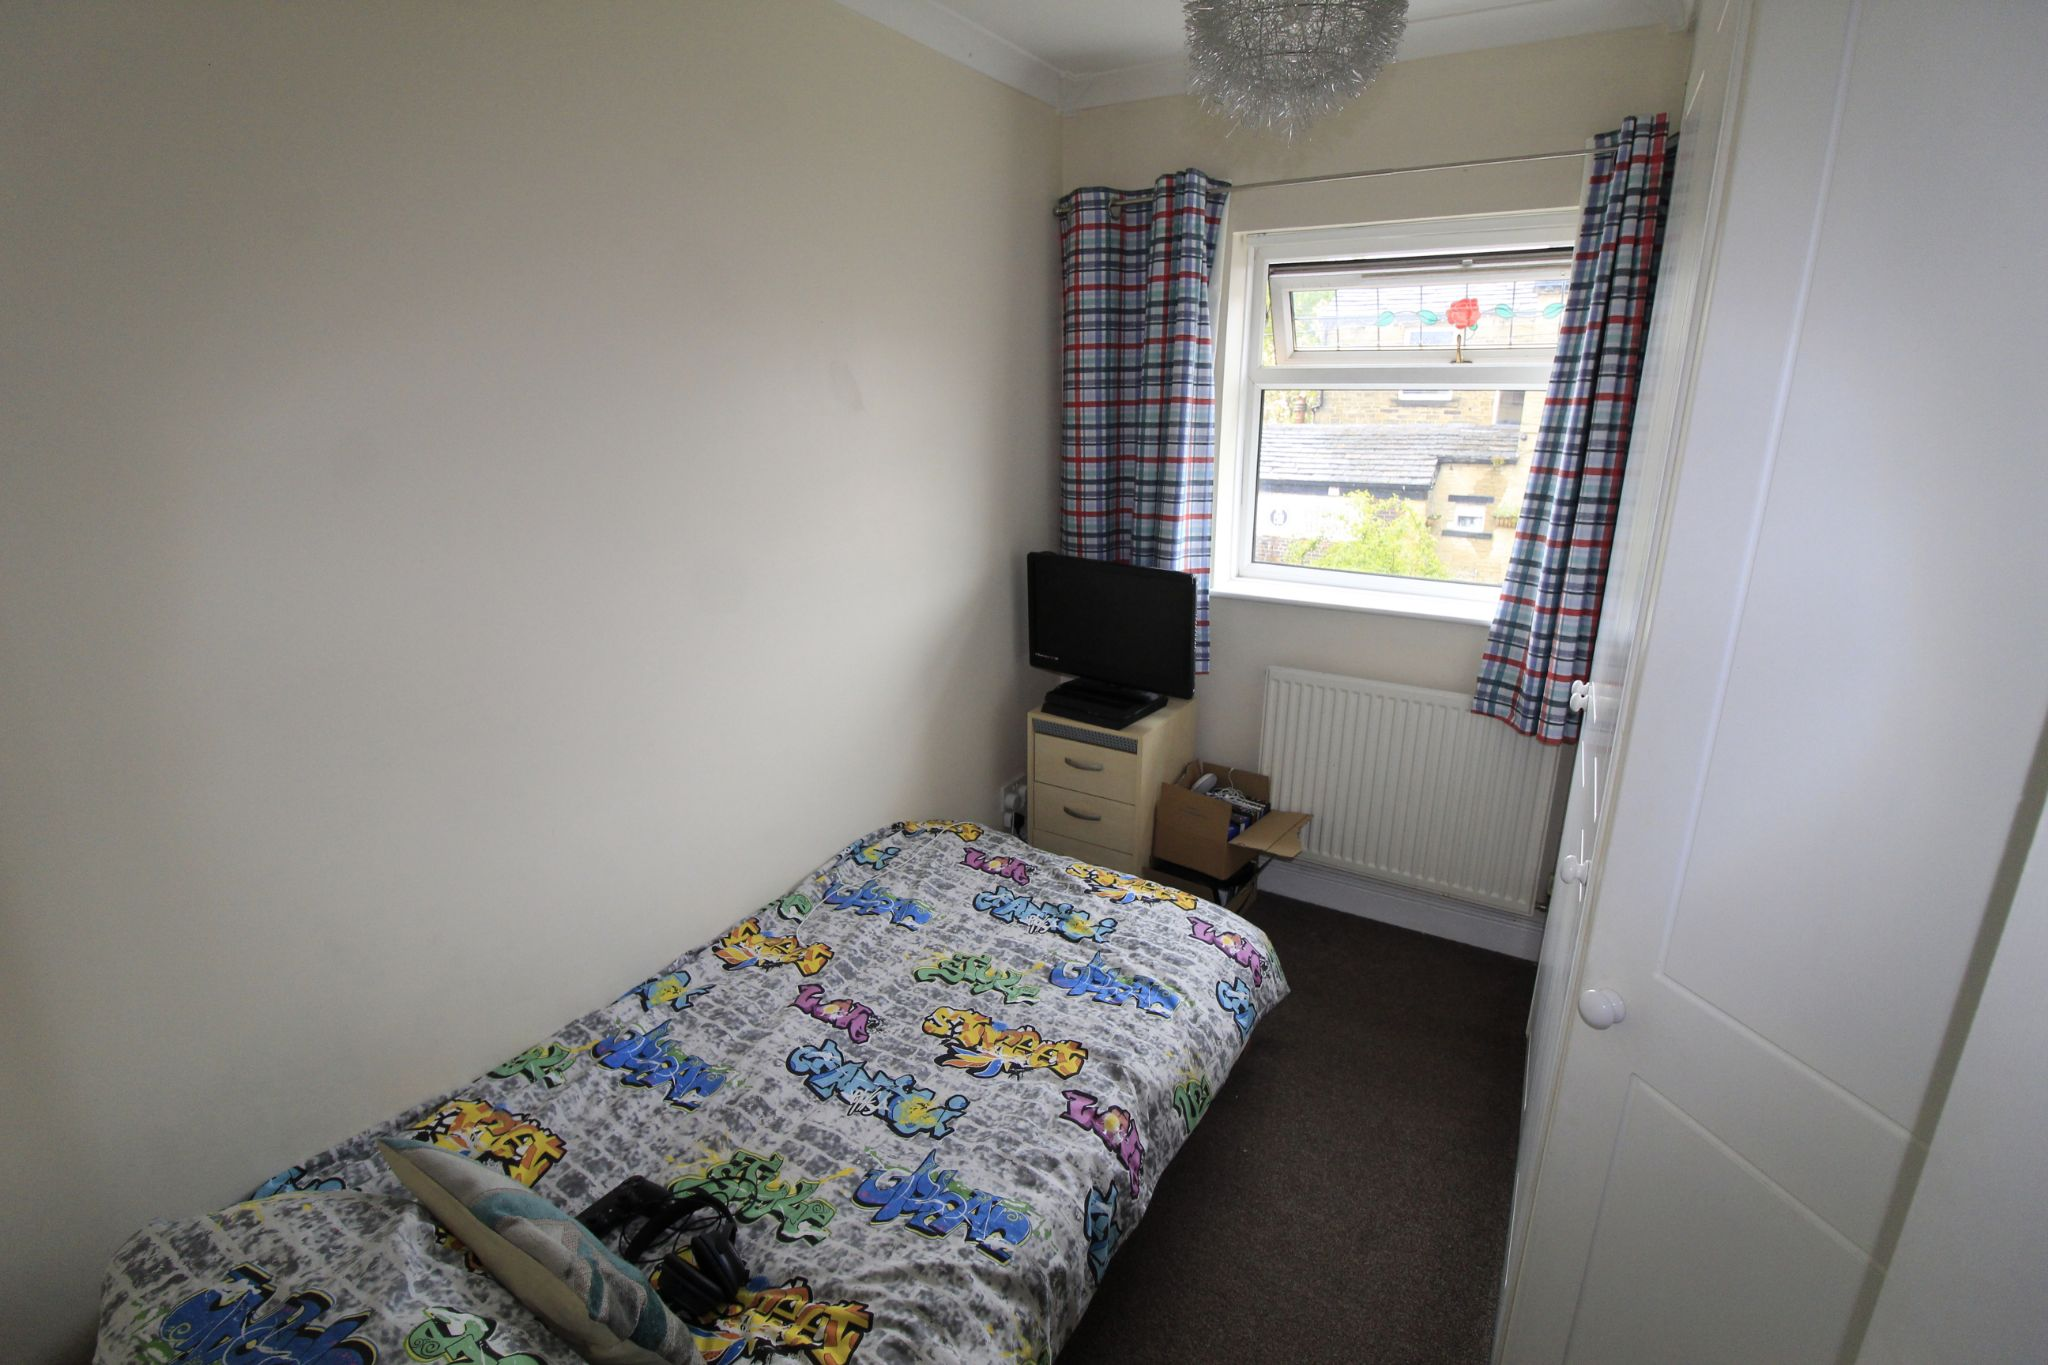 3 bedroom mid terraced house Let Agreed in Brighouse - Bedroom 3